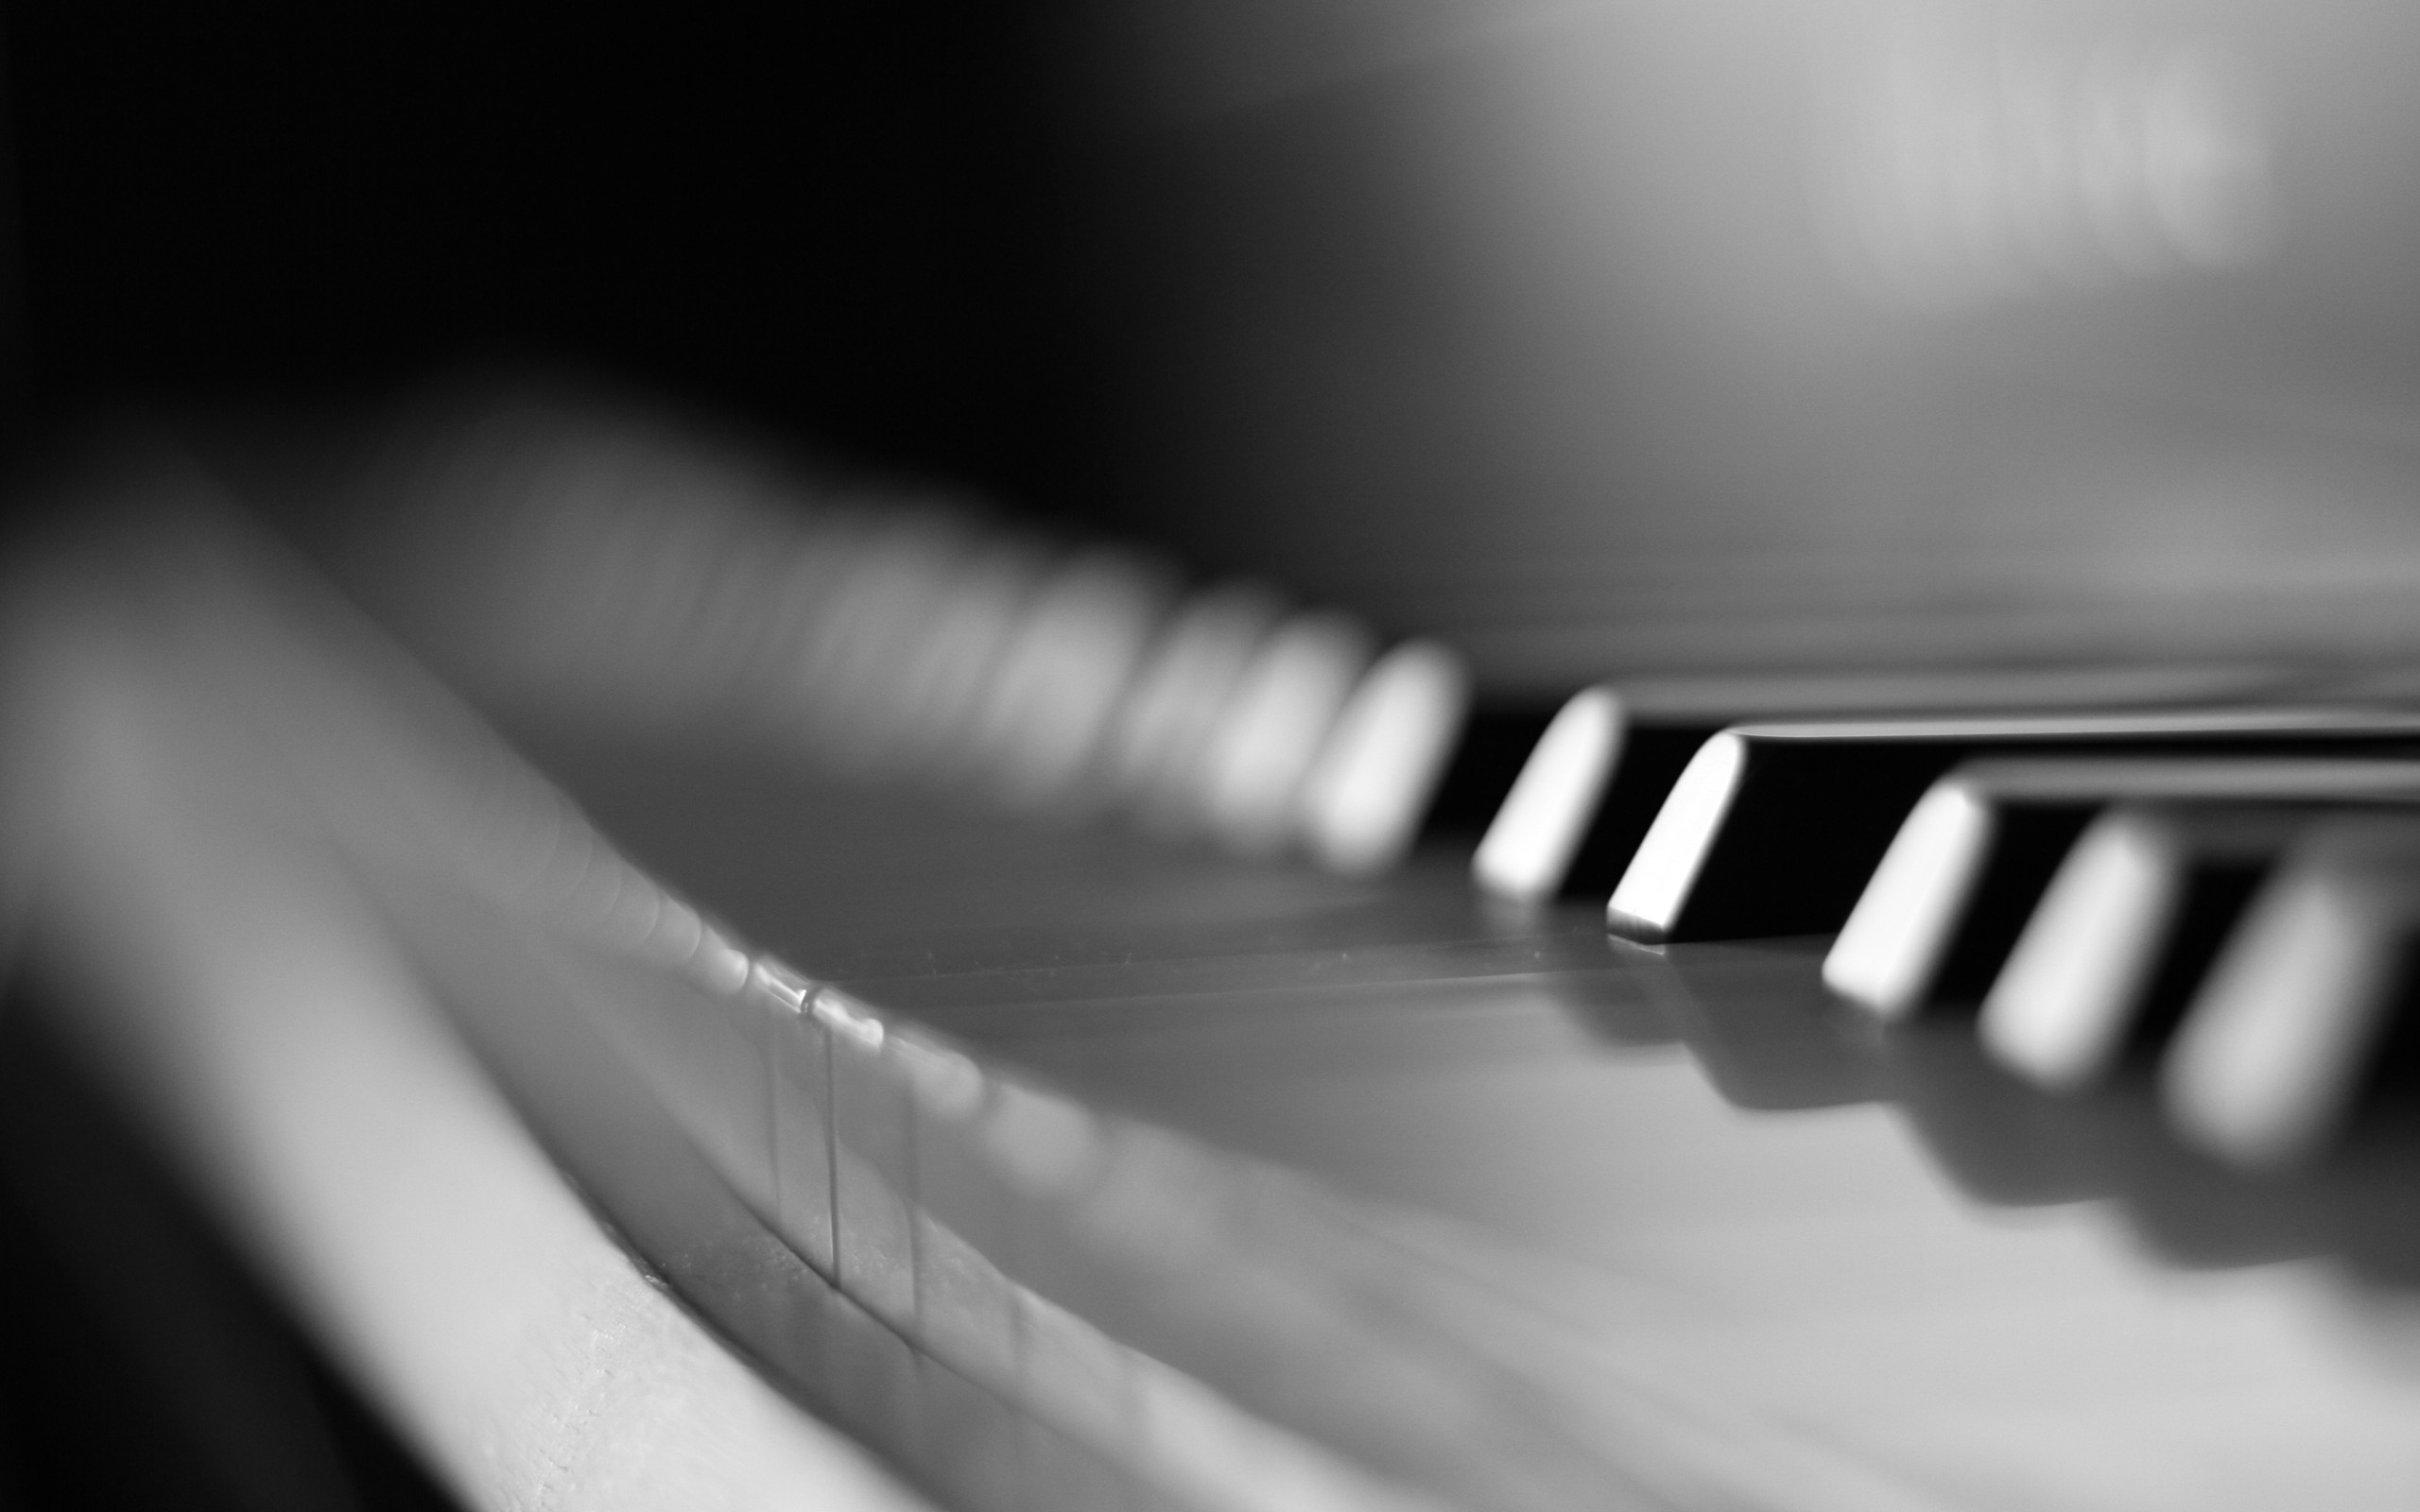 81 piano hd wallpapers backgrounds wallpaper abyss - Cool piano backgrounds ...